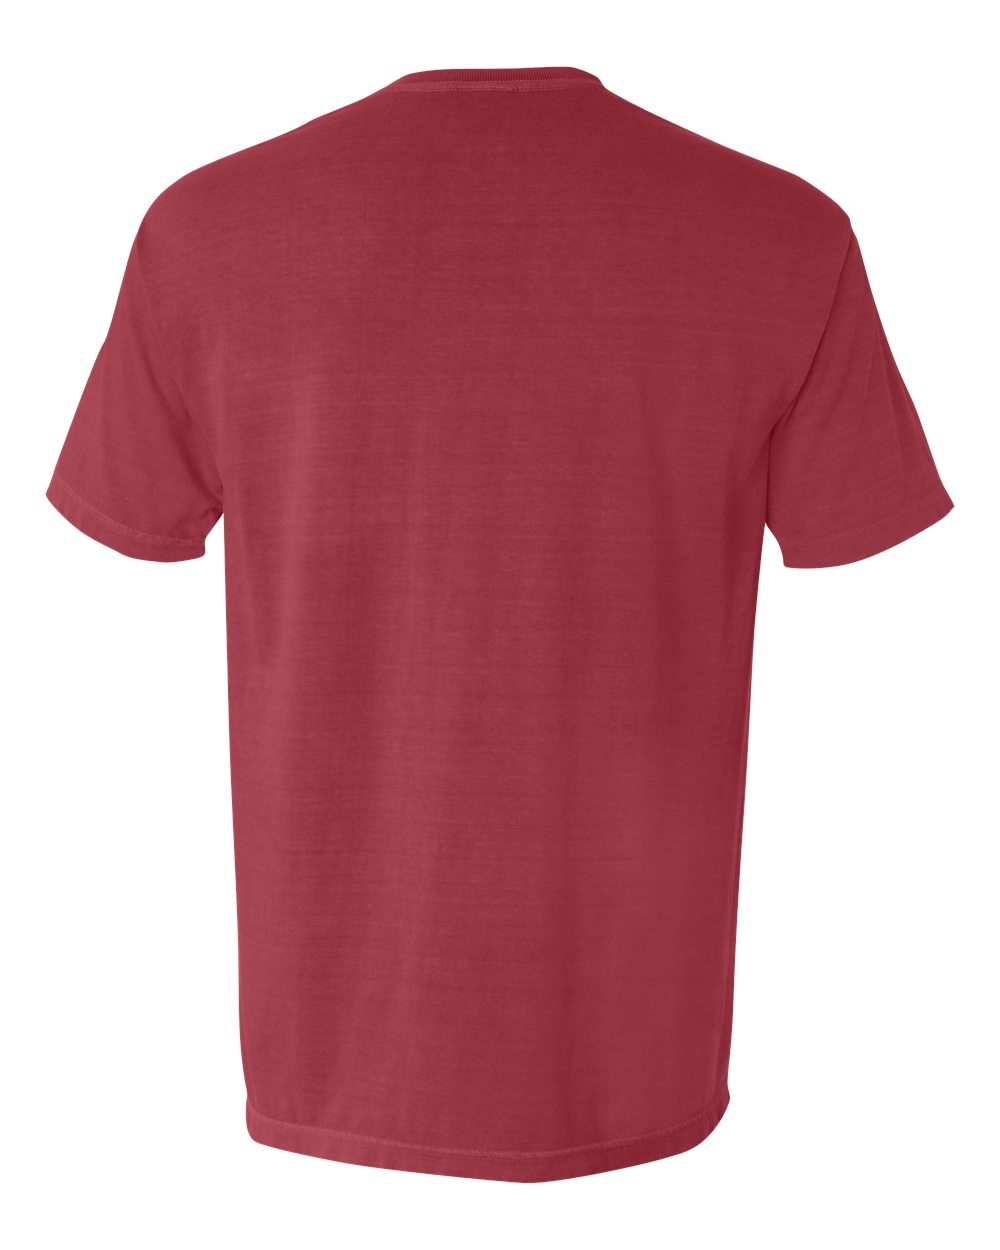 Comfort-Colors-Men-039-s-6-1-oz-Garment-Dyed-Pocket-T-Shirt-6030CC-S-3XL thumbnail 34